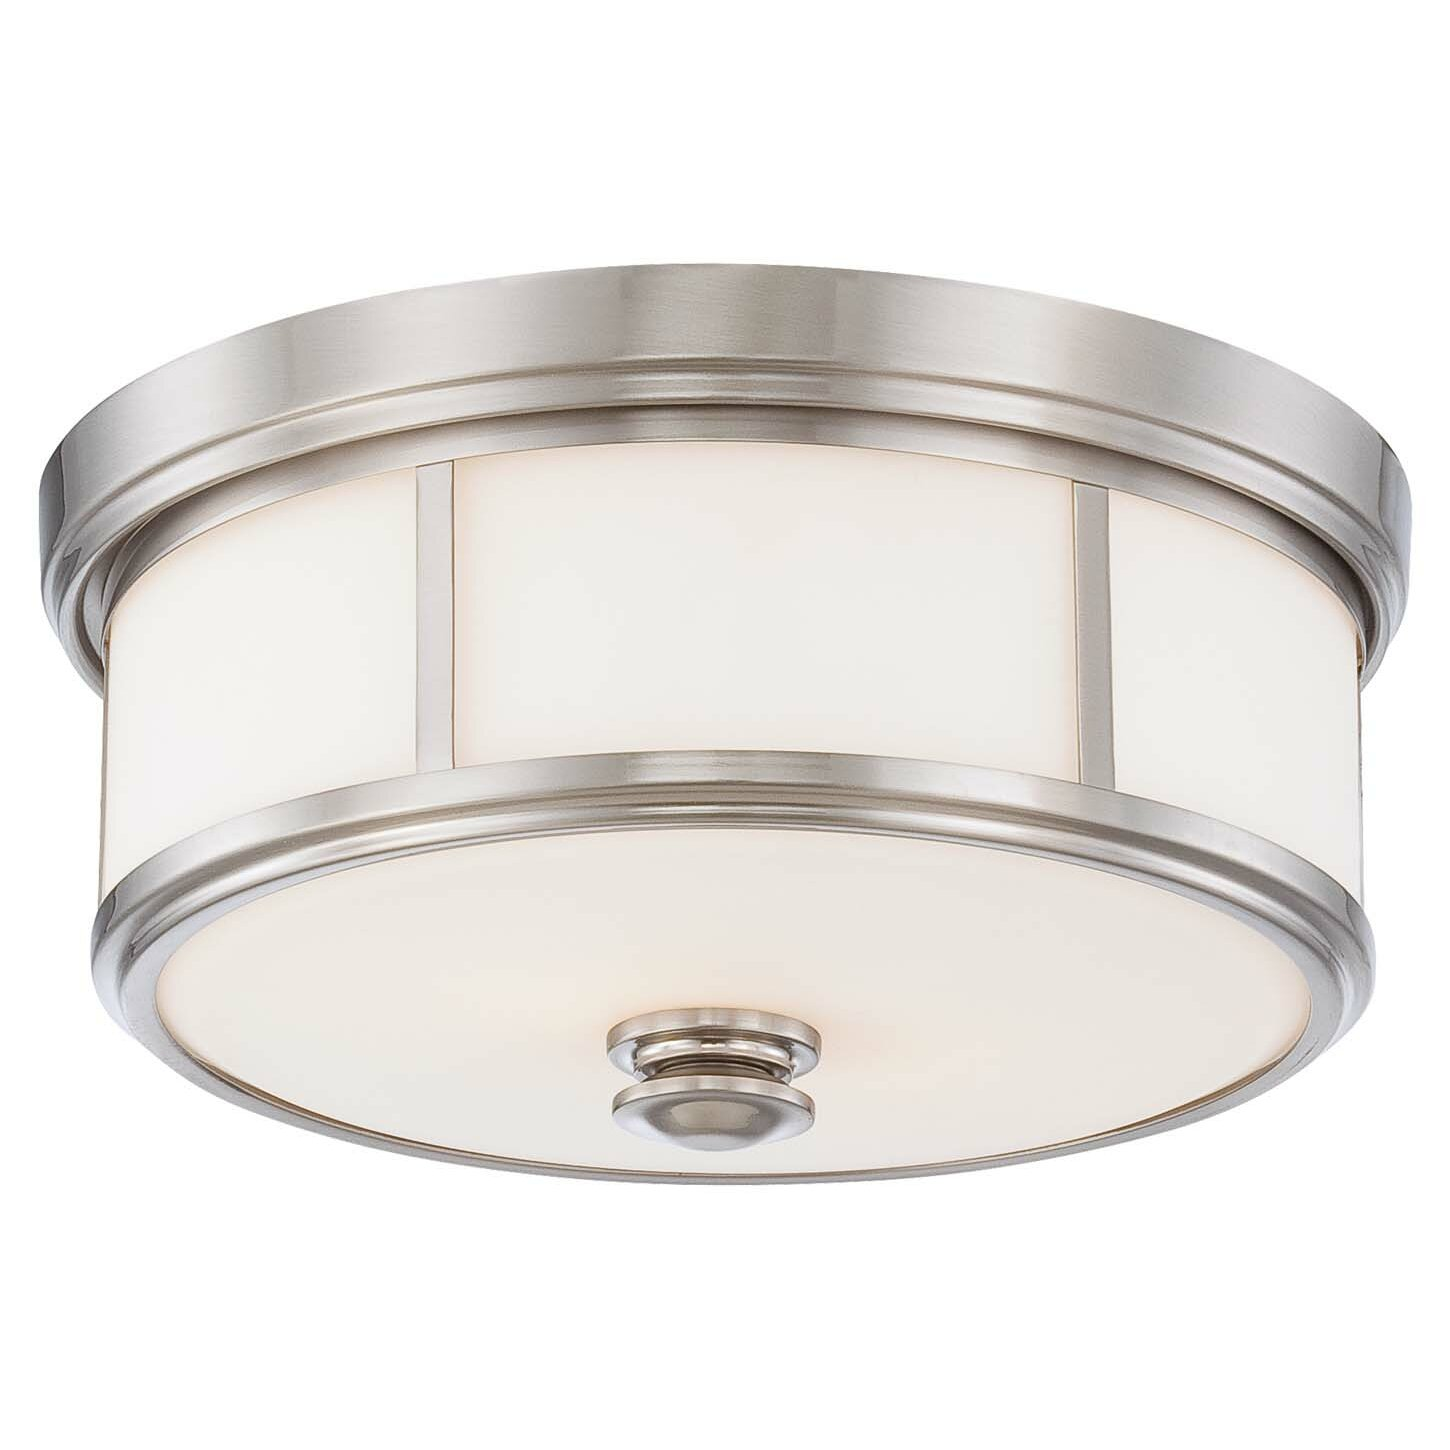 Minka Lavery 2 Light Flush Mount Reviews Wayfair